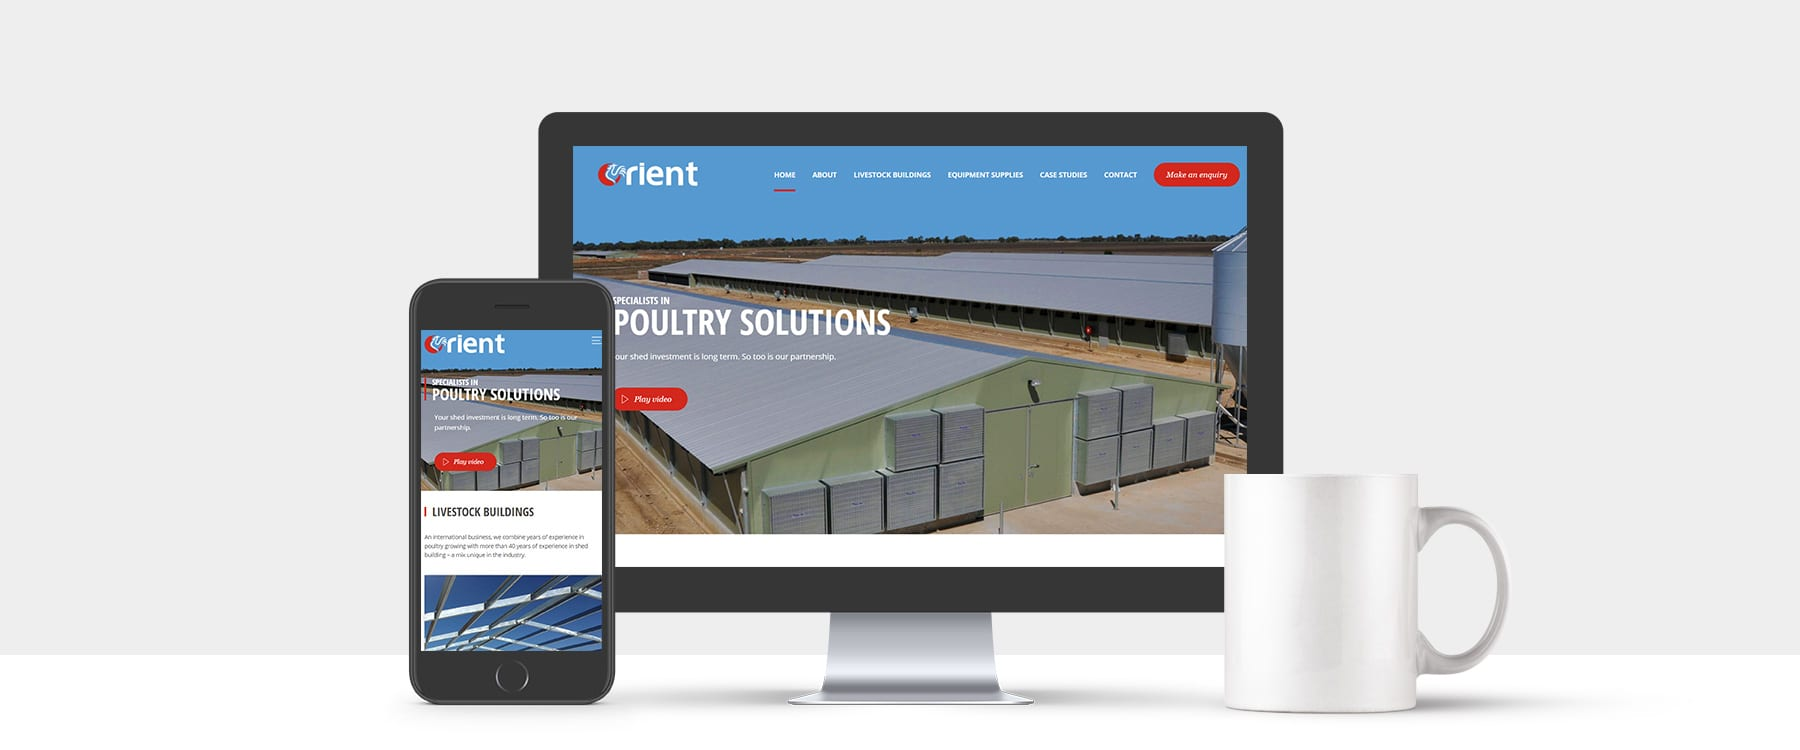 International Specialists in Poultry Solutions, Orient, Launch Visually Engaging Brochure Website Image